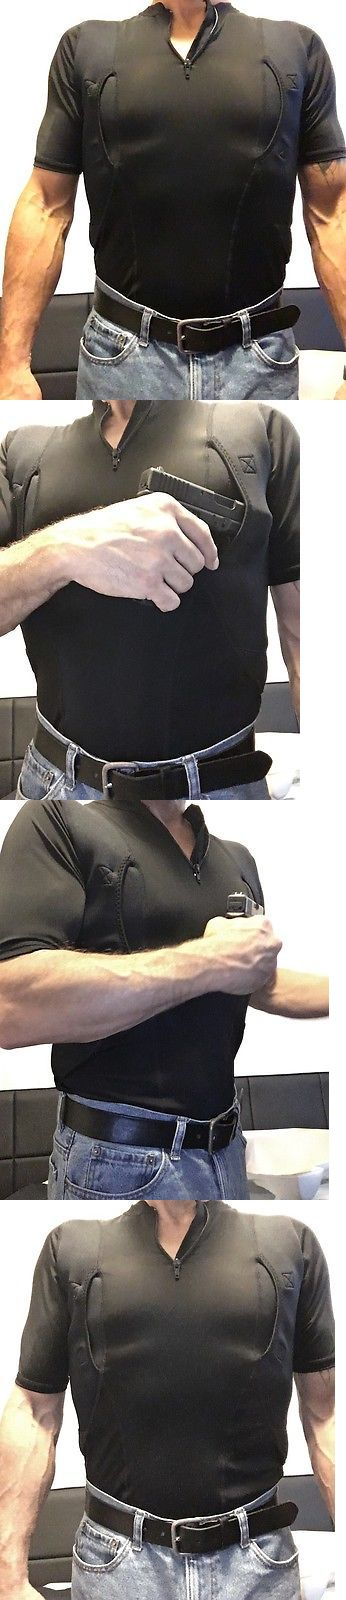 Tactical Clothing 177896: Medium Ss-Men S Black Concealed Carry Tactical Holster Shirt W 7Inch Zipper -> BUY IT NOW ONLY: $37 on eBay!